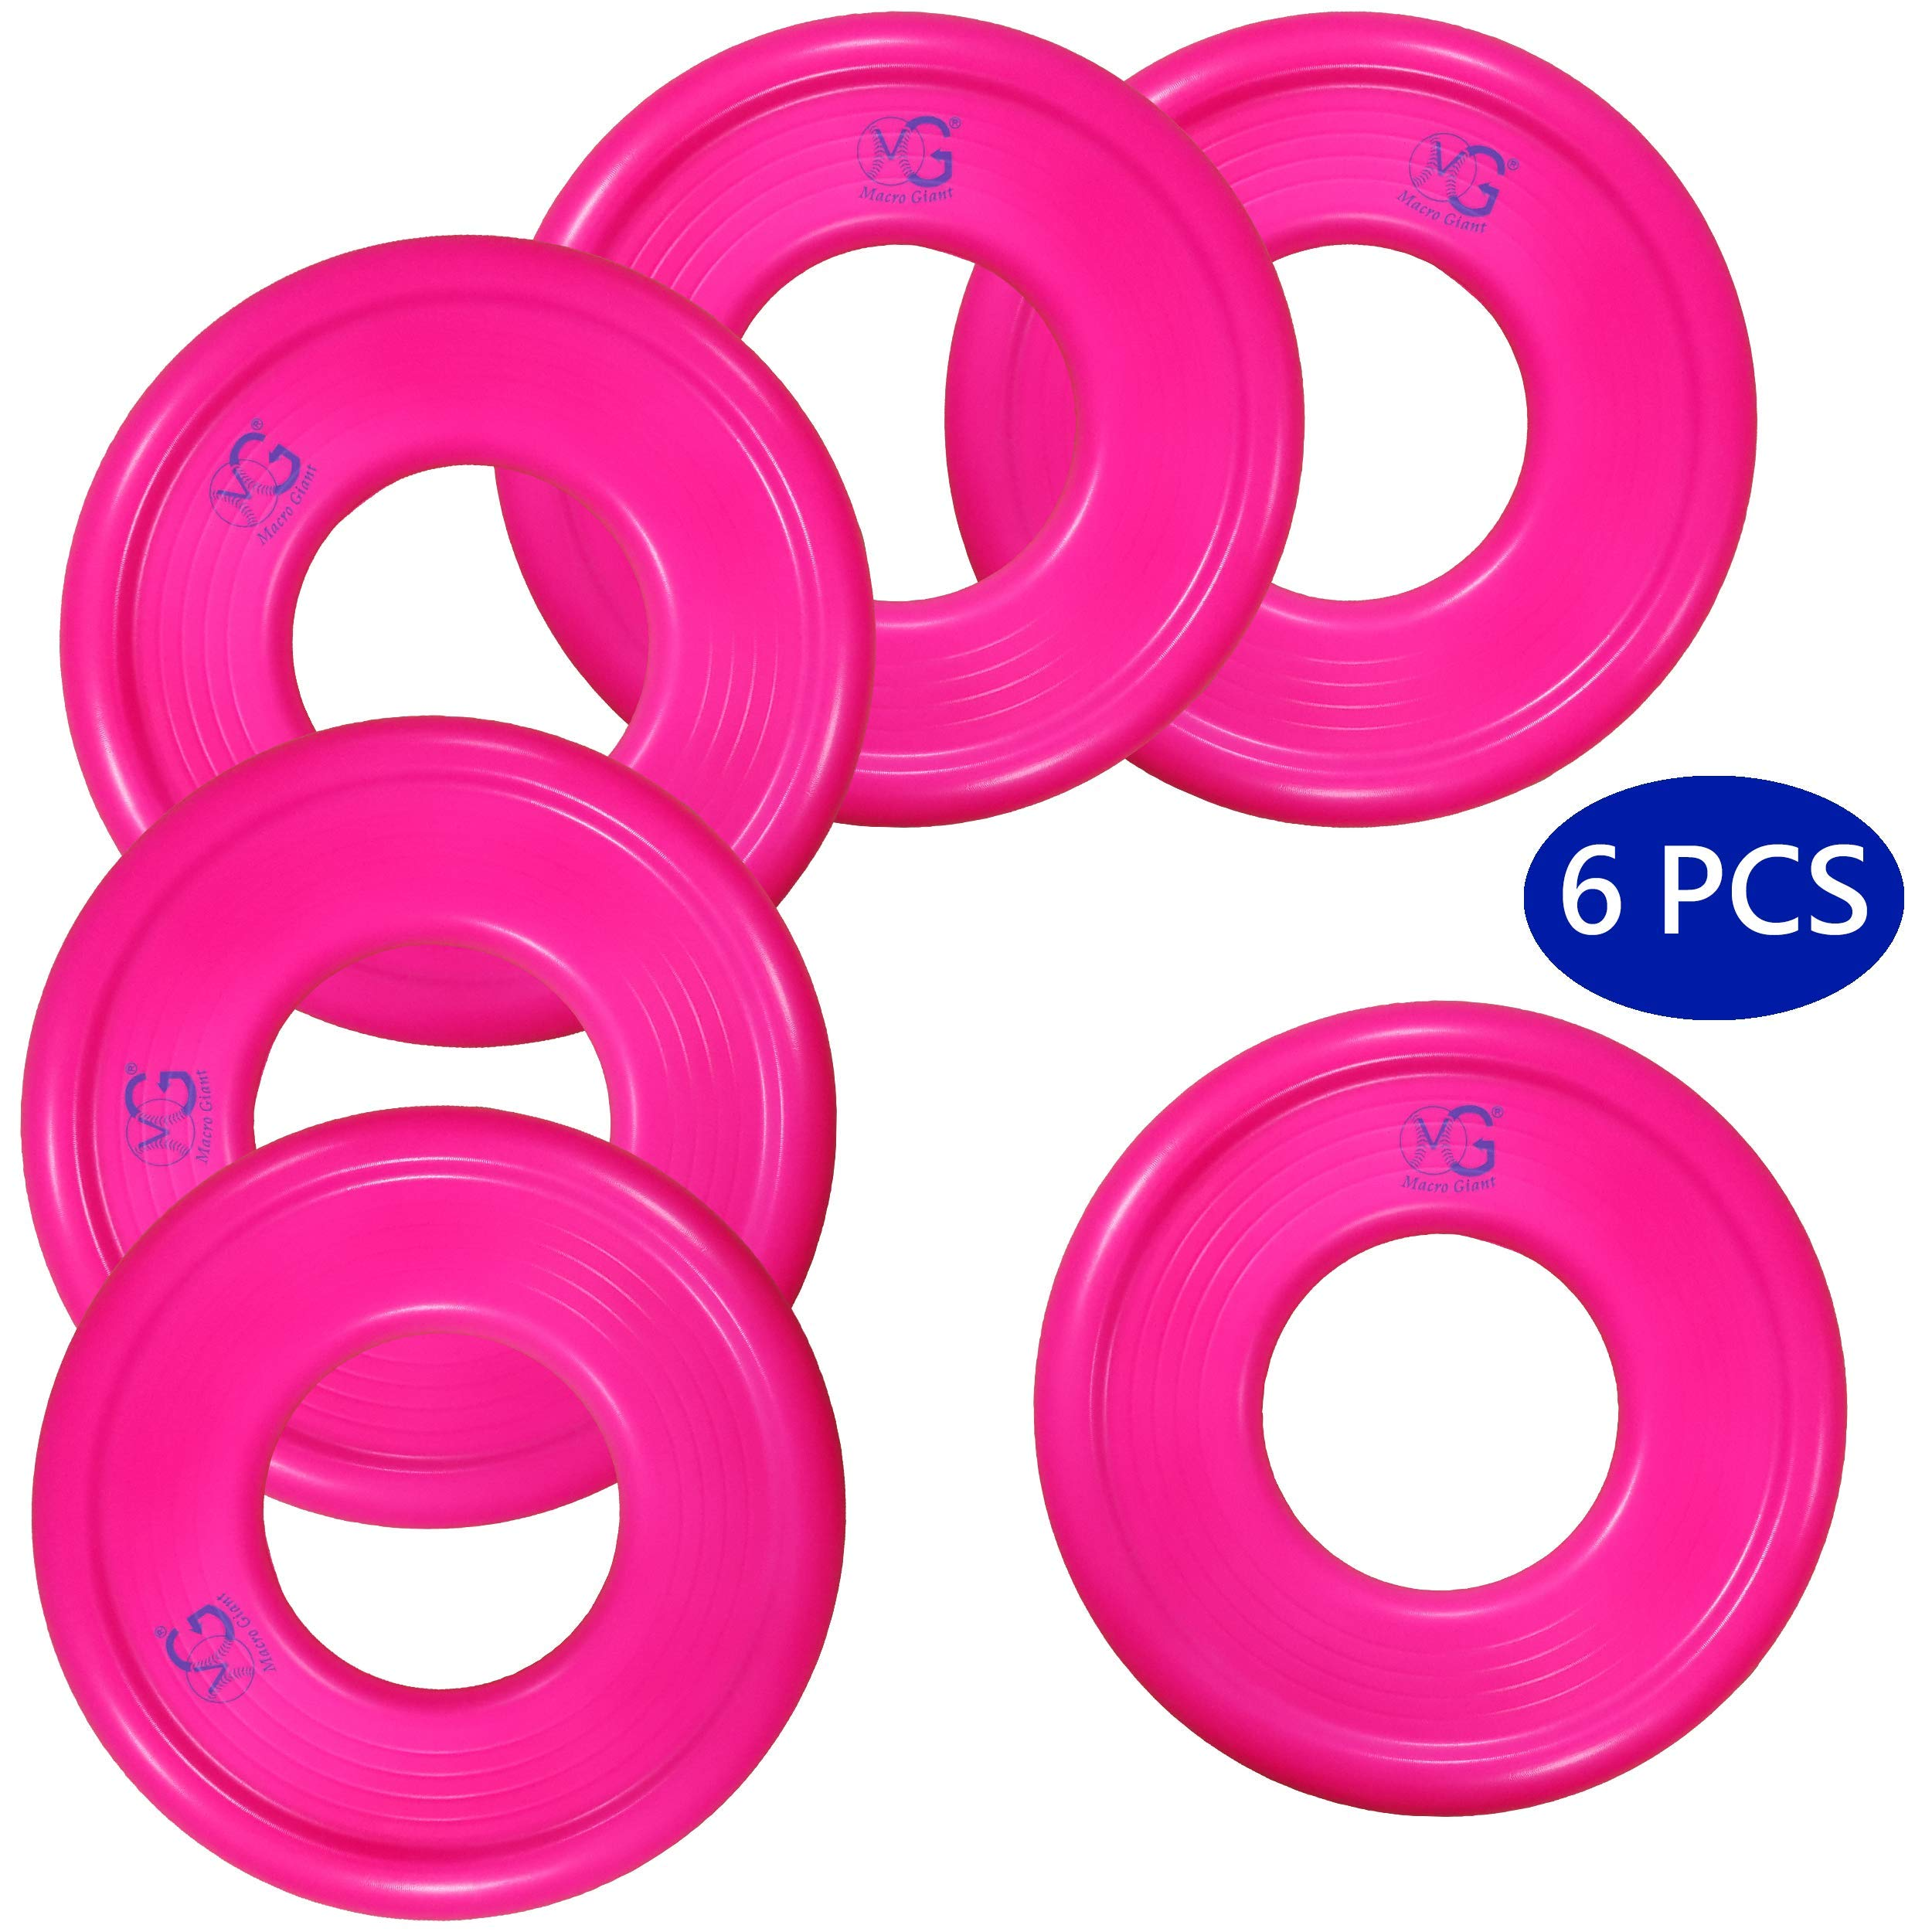 Macro Giant 9 Inch Soft Foam Frisbee Flying Discs, Set of 6, Neon Red, Playground, Kid Sports Toy, Ring Toss Game, Parenting Activity, Outdoor Indoor, Camp Game